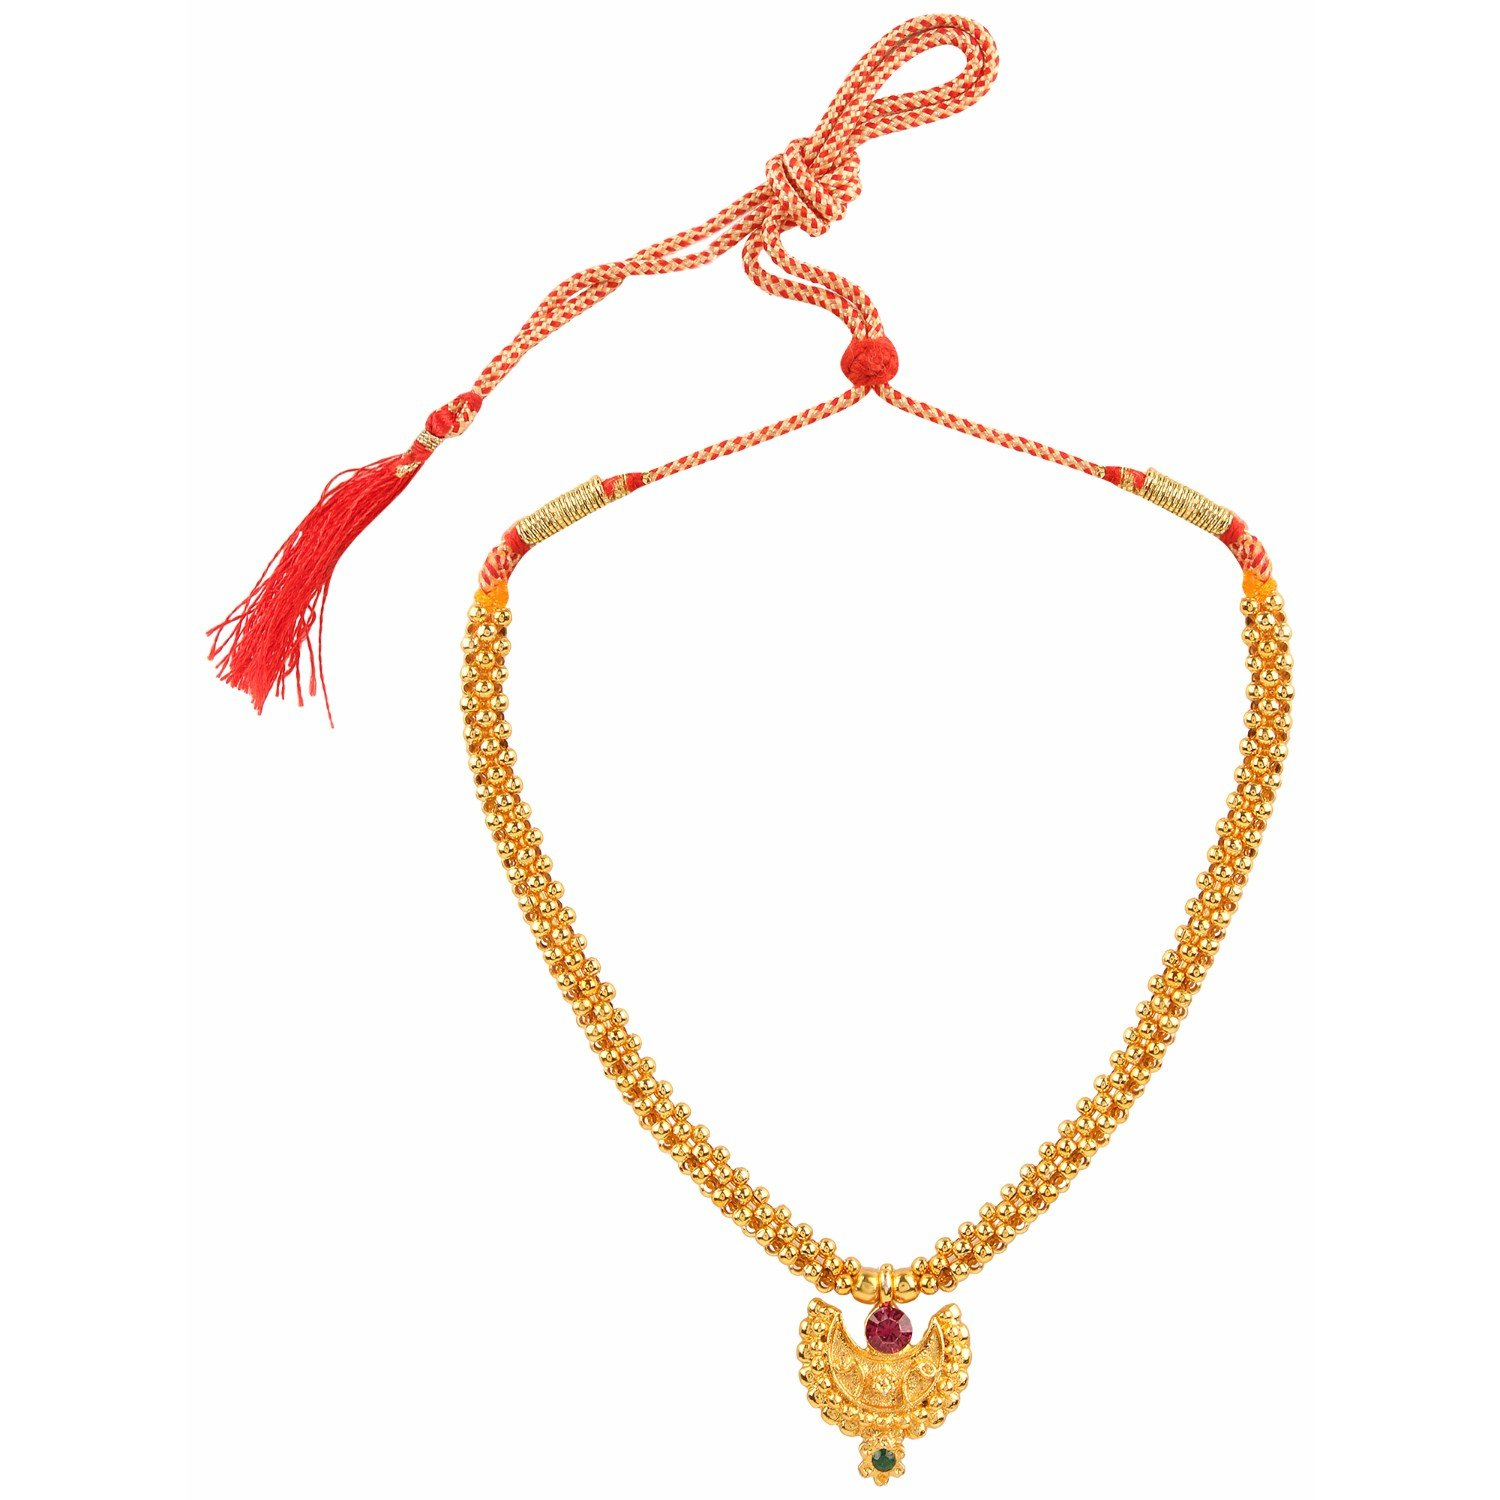 Efulgenz Indian Bollywood Traditional White Red Rhinestone Faux Ruby Pearl Designer Thusi Style Necklace in Antique 18K Gold Tone for Women and Girls (Style 6)